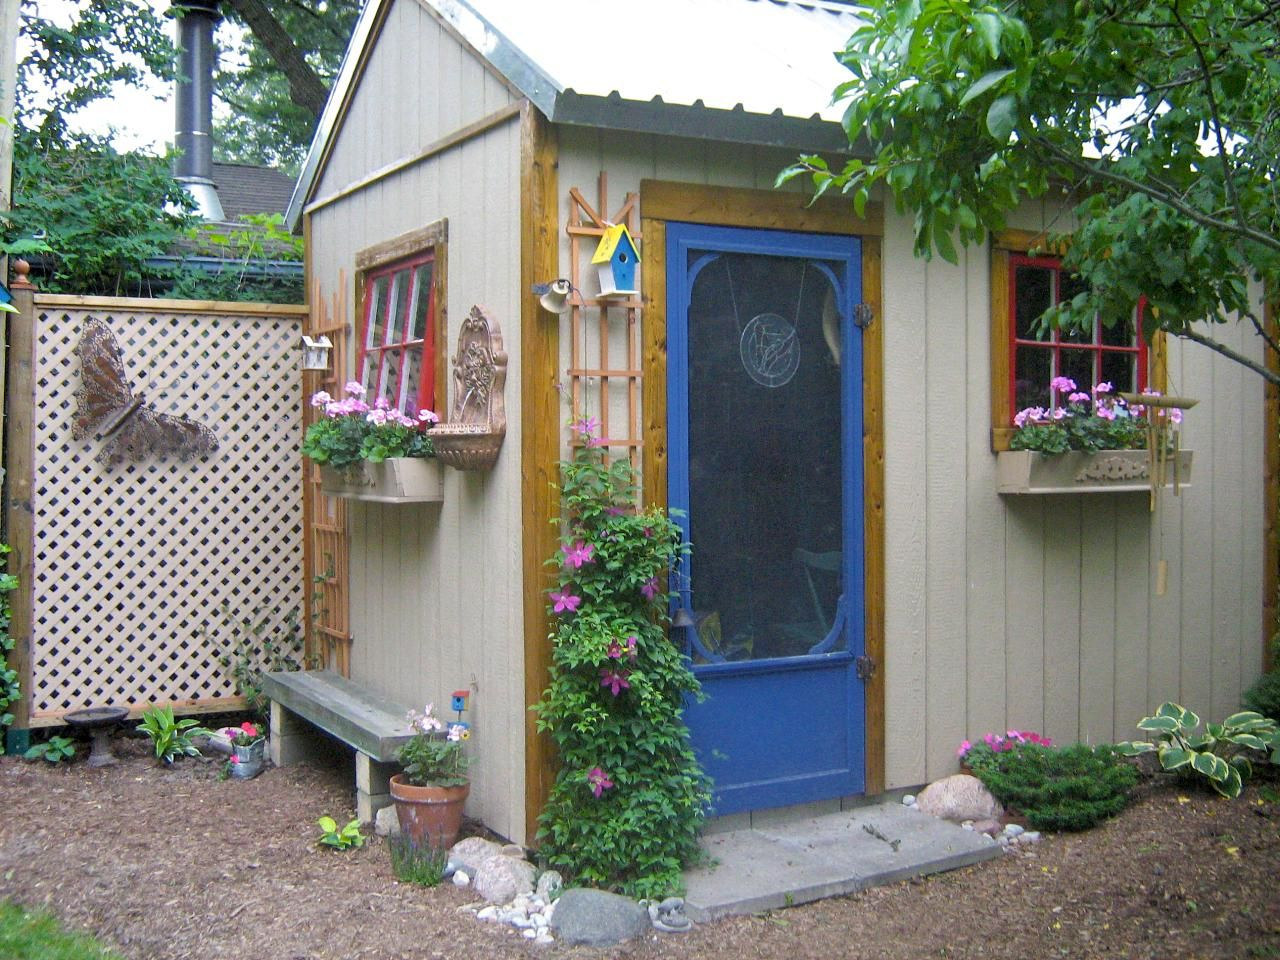 Ideas for painting your garden shed - Get Tips And Advice For Your Shed Project And Outdoor Structure Improvement Ideas That Increase Your